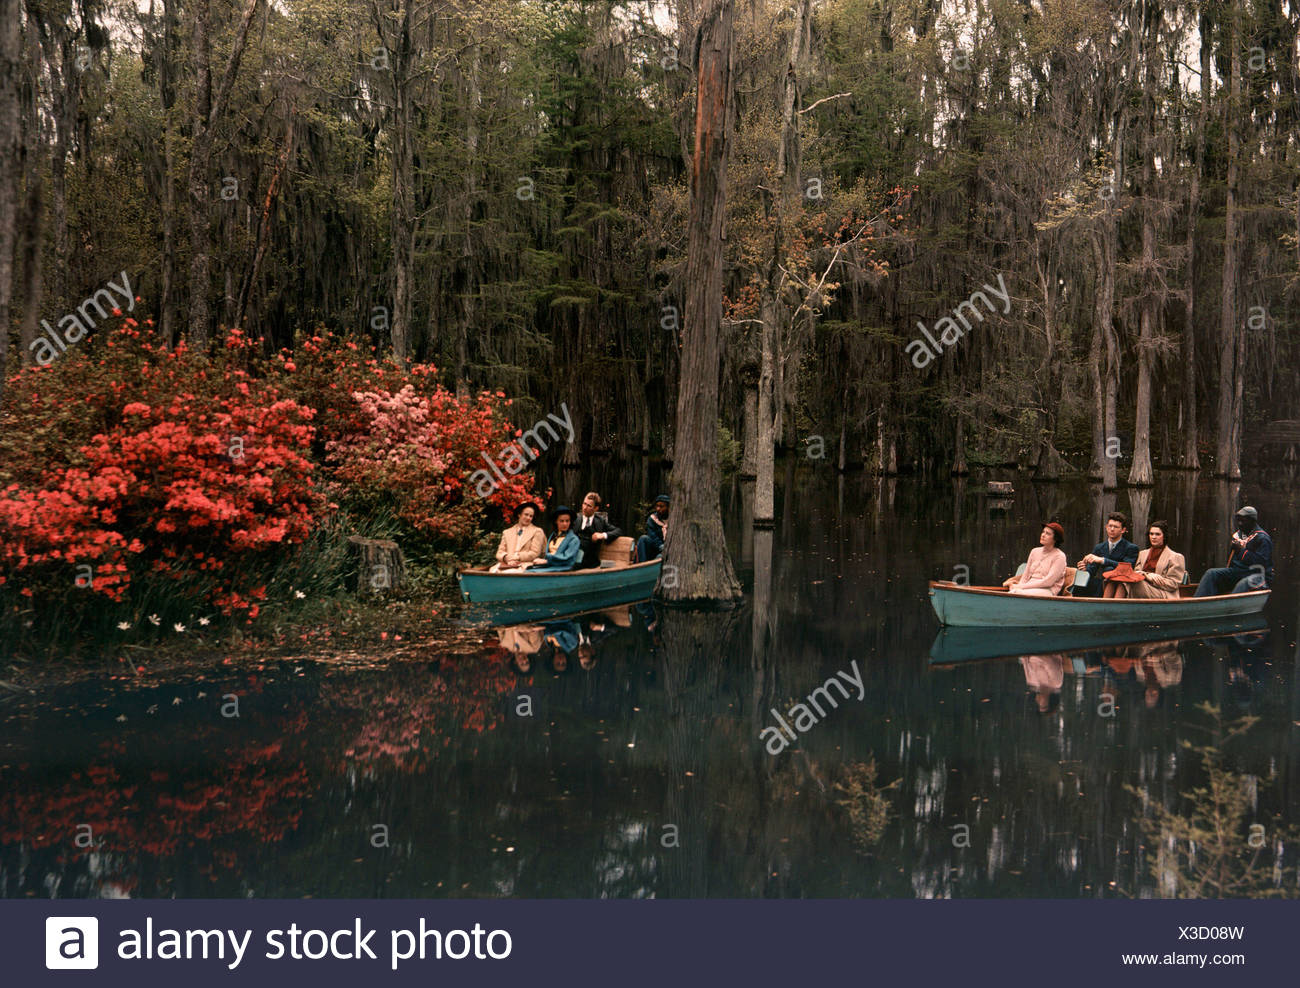 Tannic acid from old trees stains water in Cypress Gardens black. - Stock Image